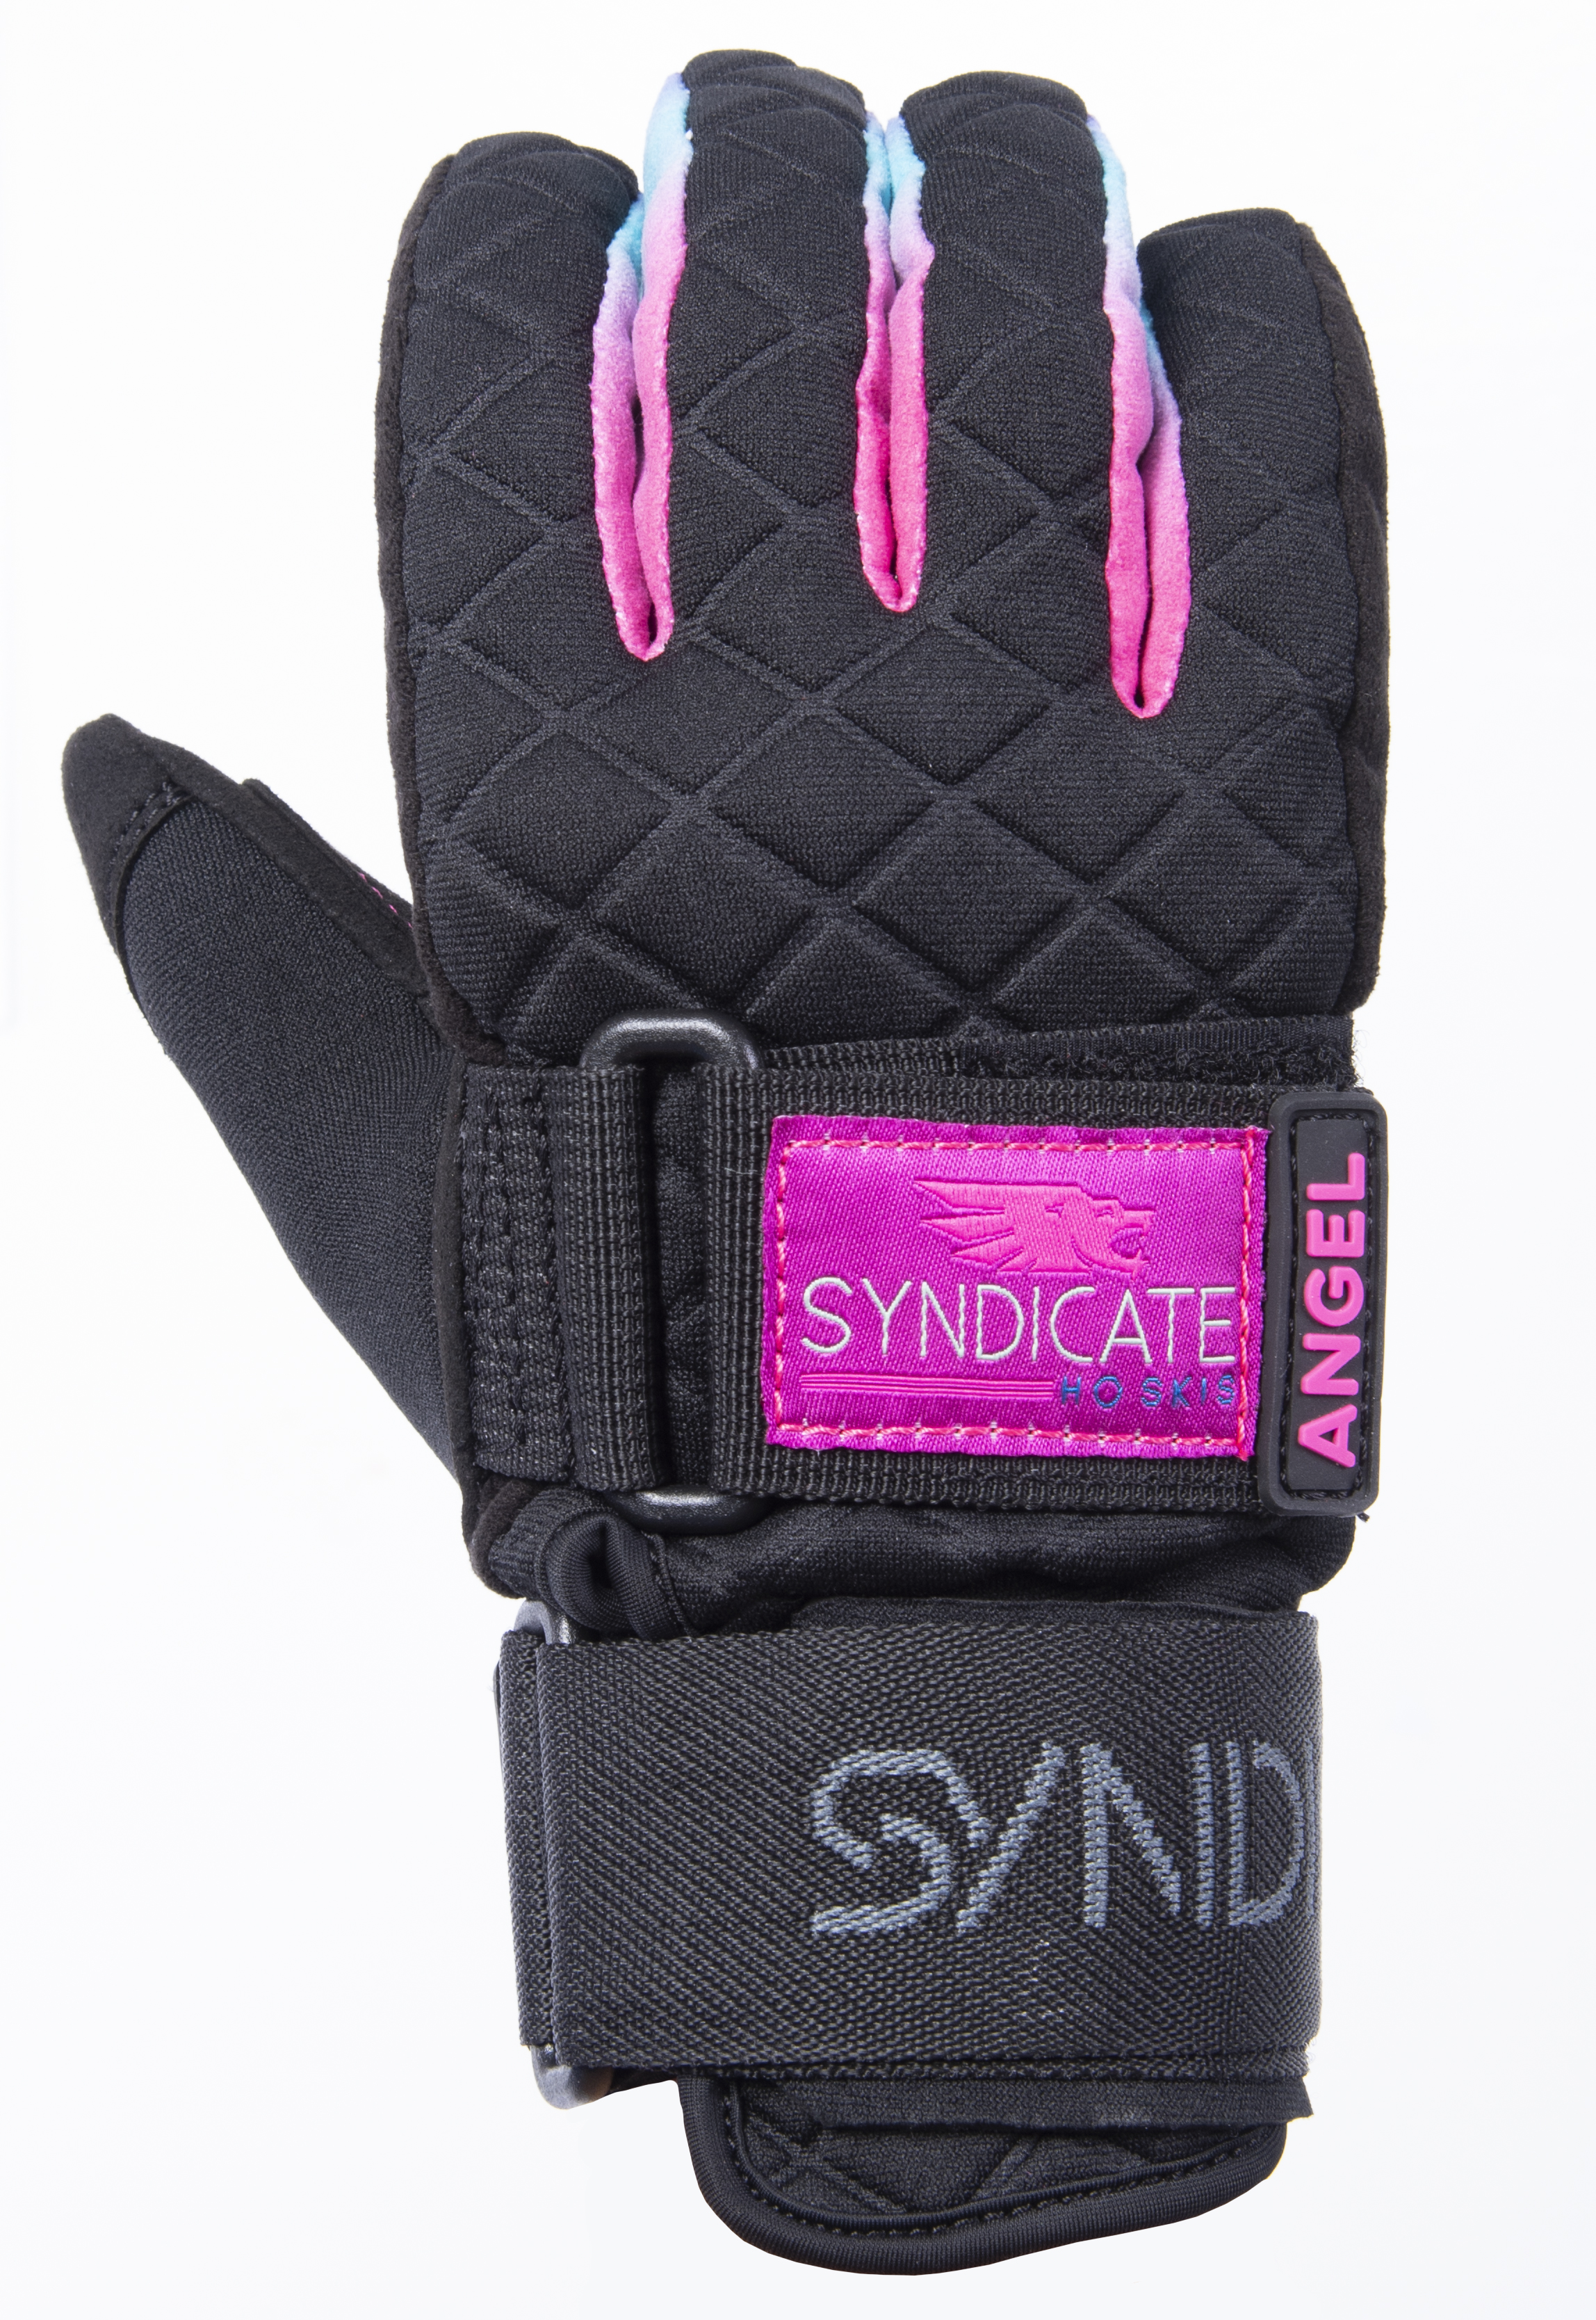 SYNDICATE ANGEL GLOVE HO SPORTS 2019